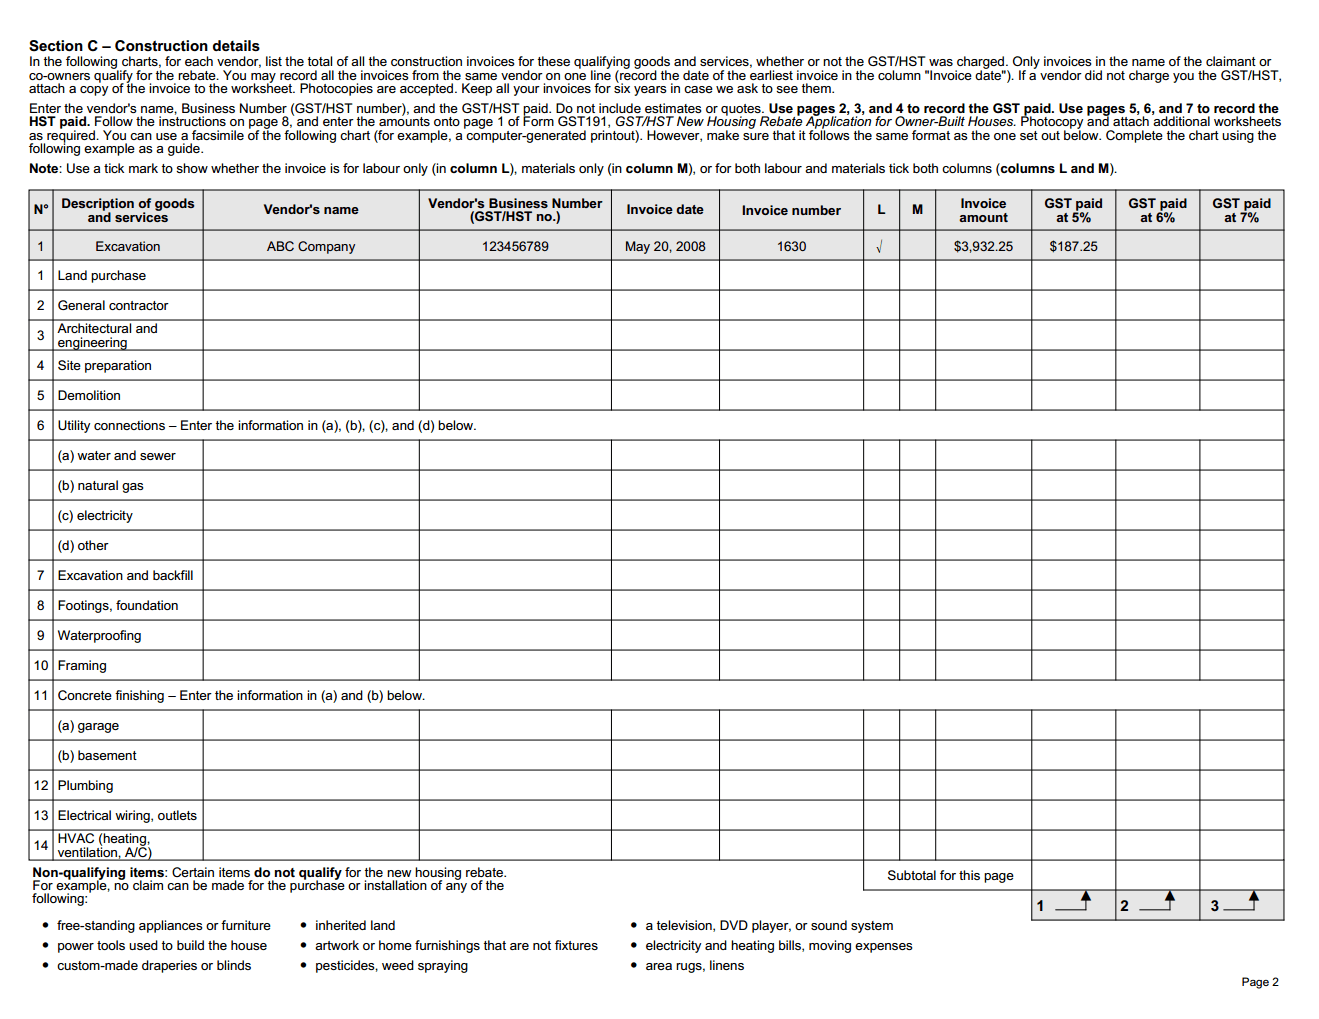 Construction Summary Worksheet For New Housing Tax Rebate